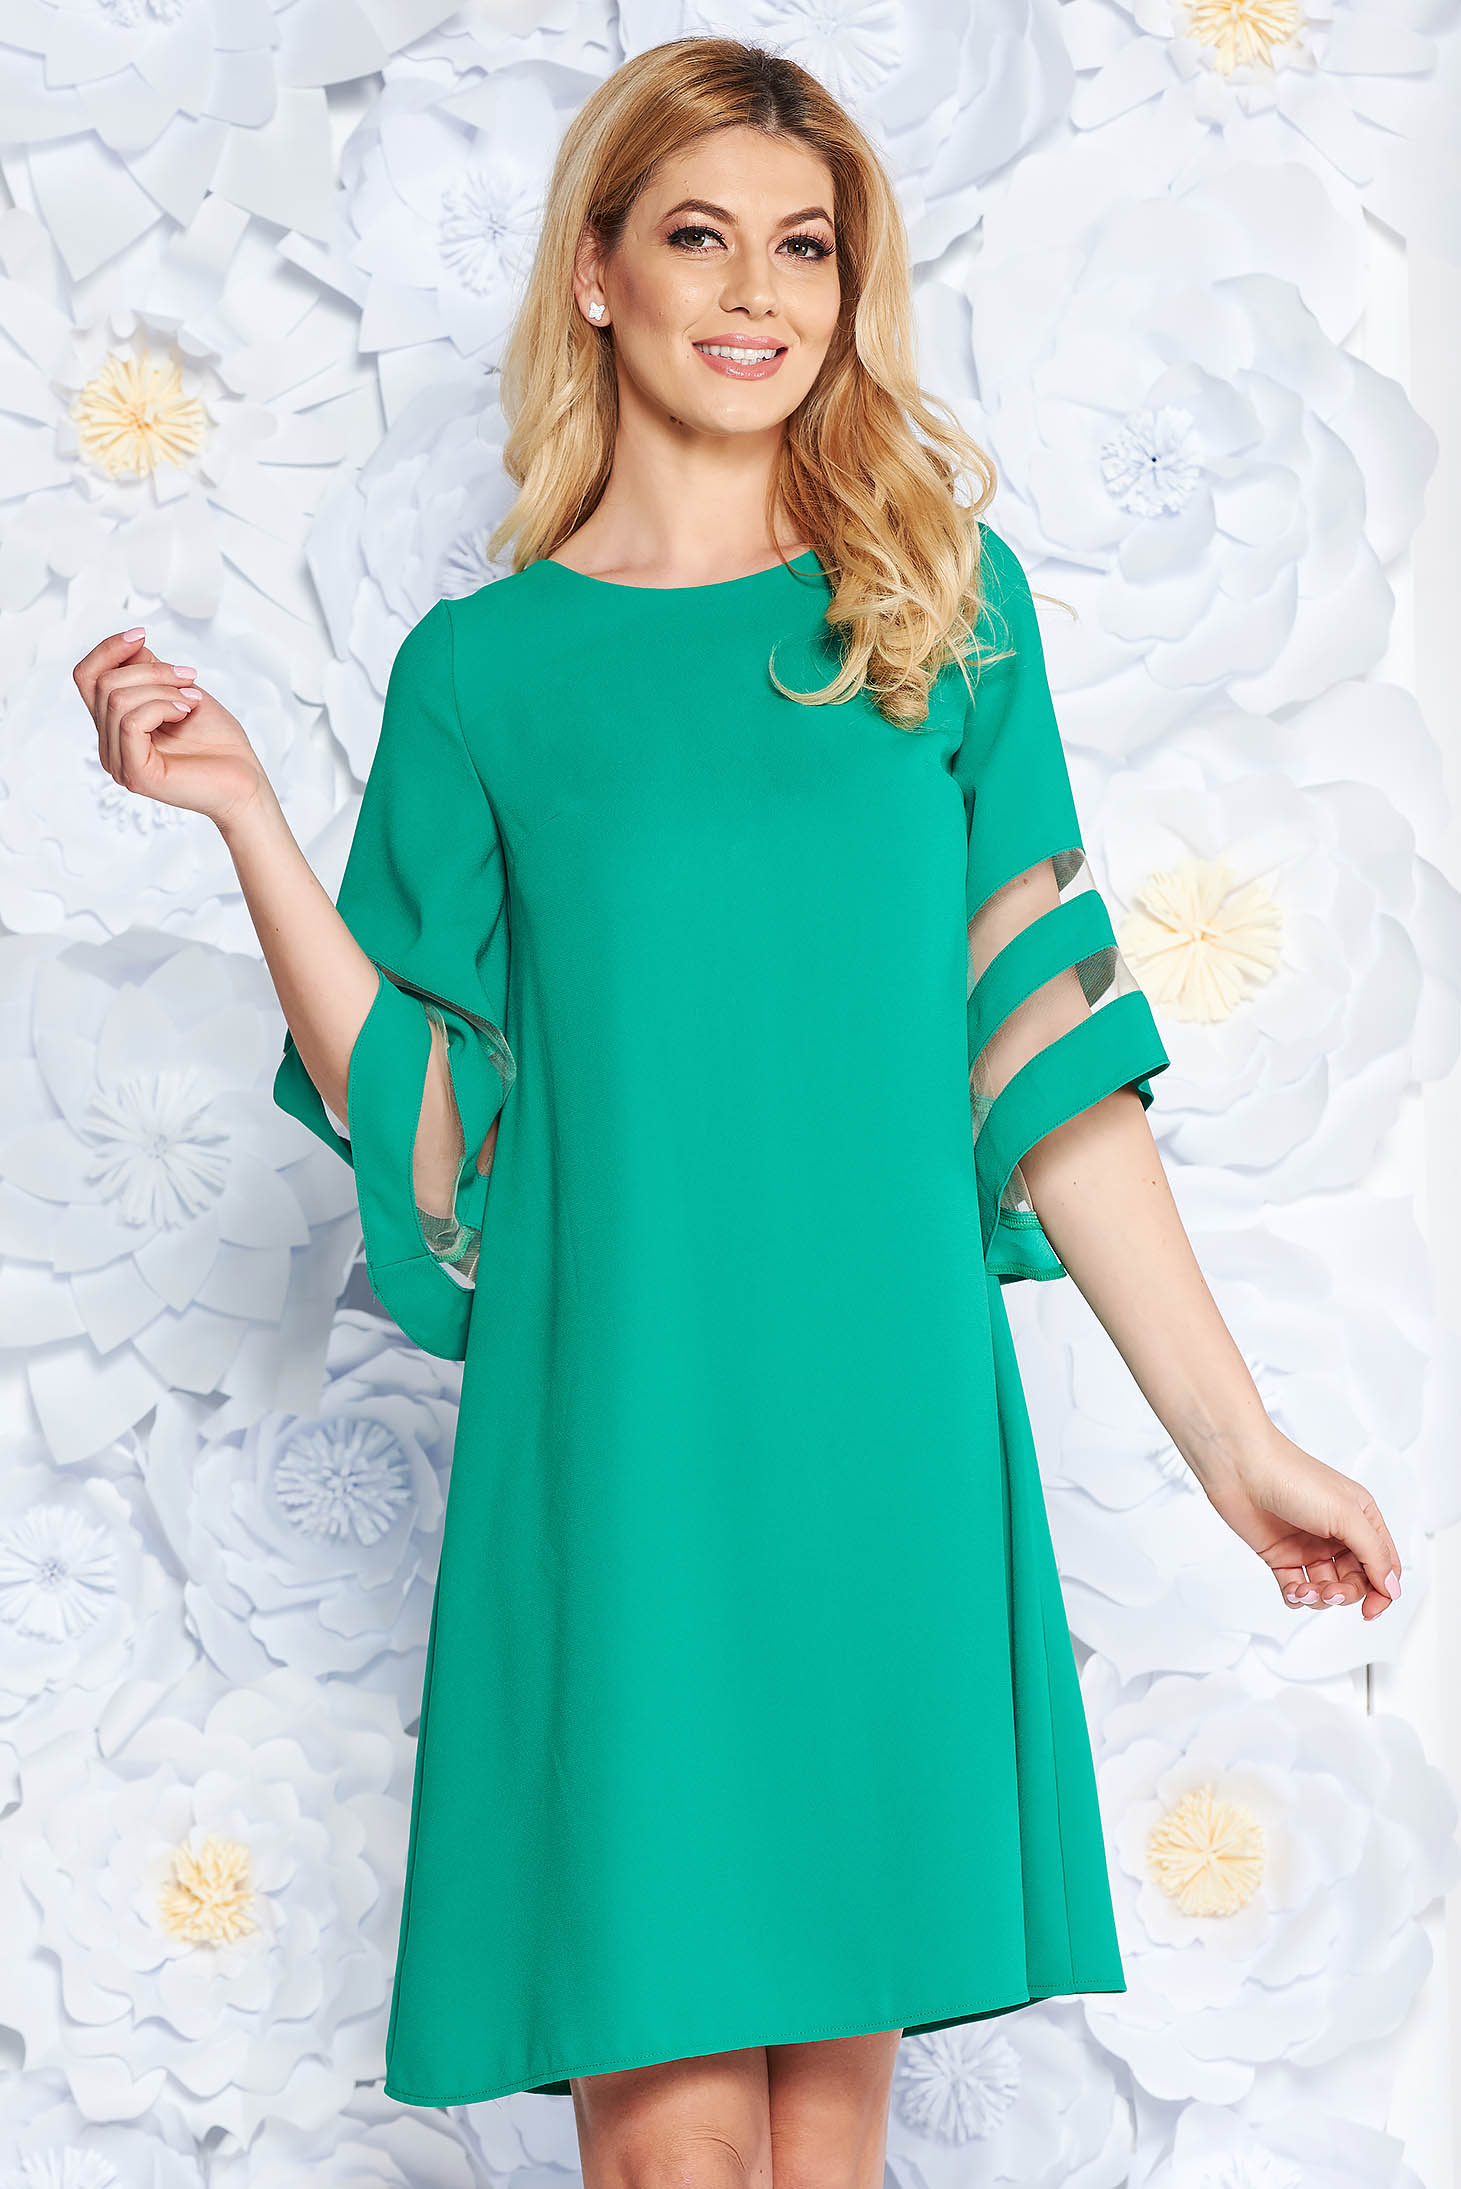 Green dress elegant flared from non elastic fabric large sleeves